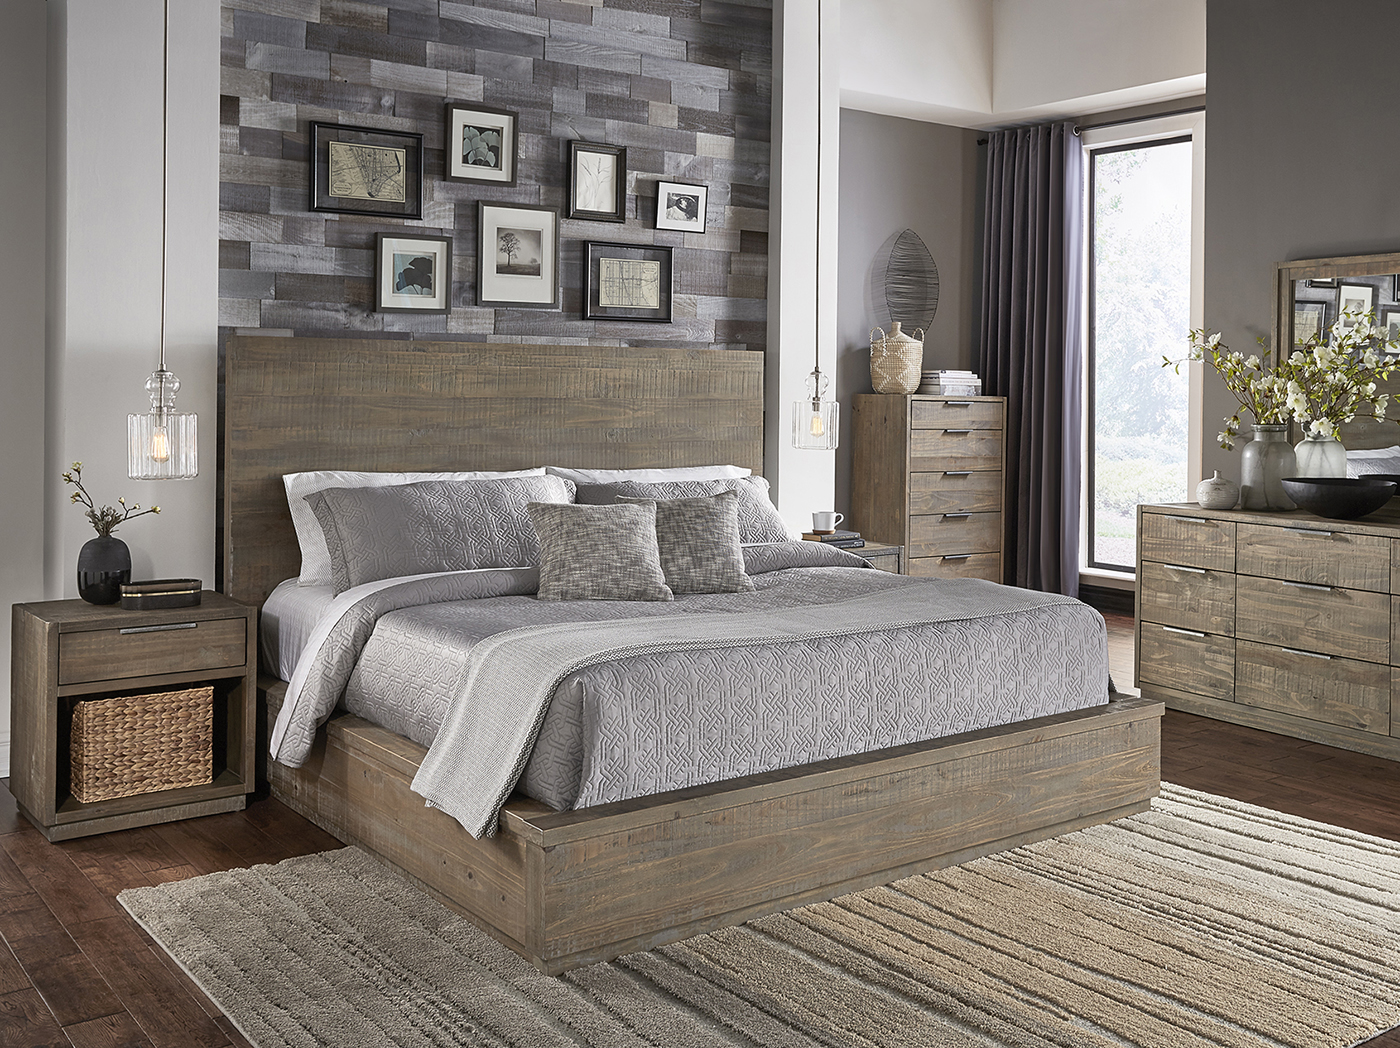 Gray's Harbor King Panel Bed